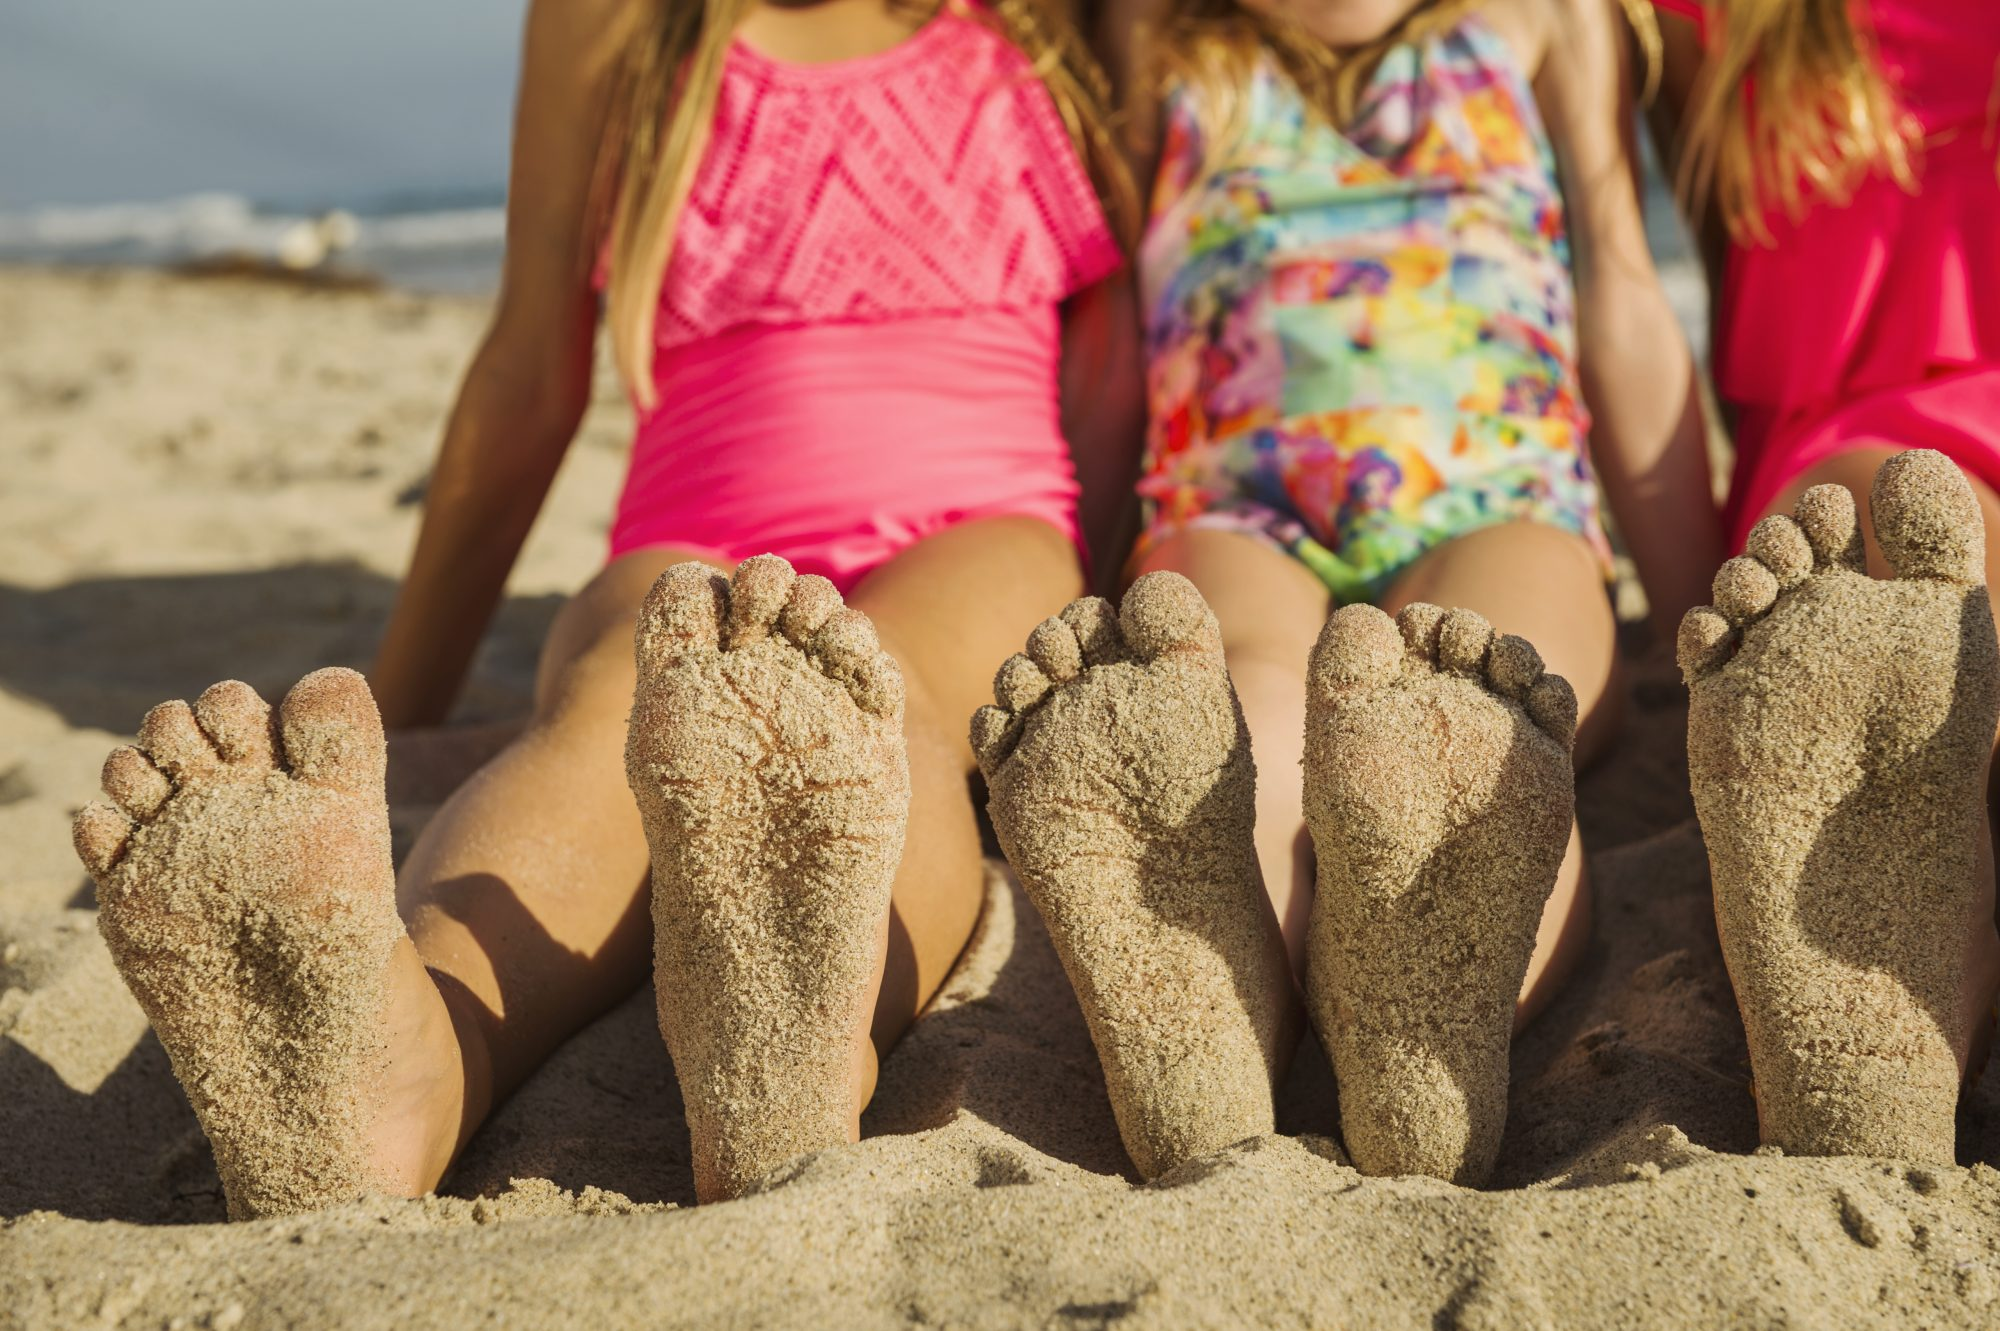 Girls with Sandy Feet